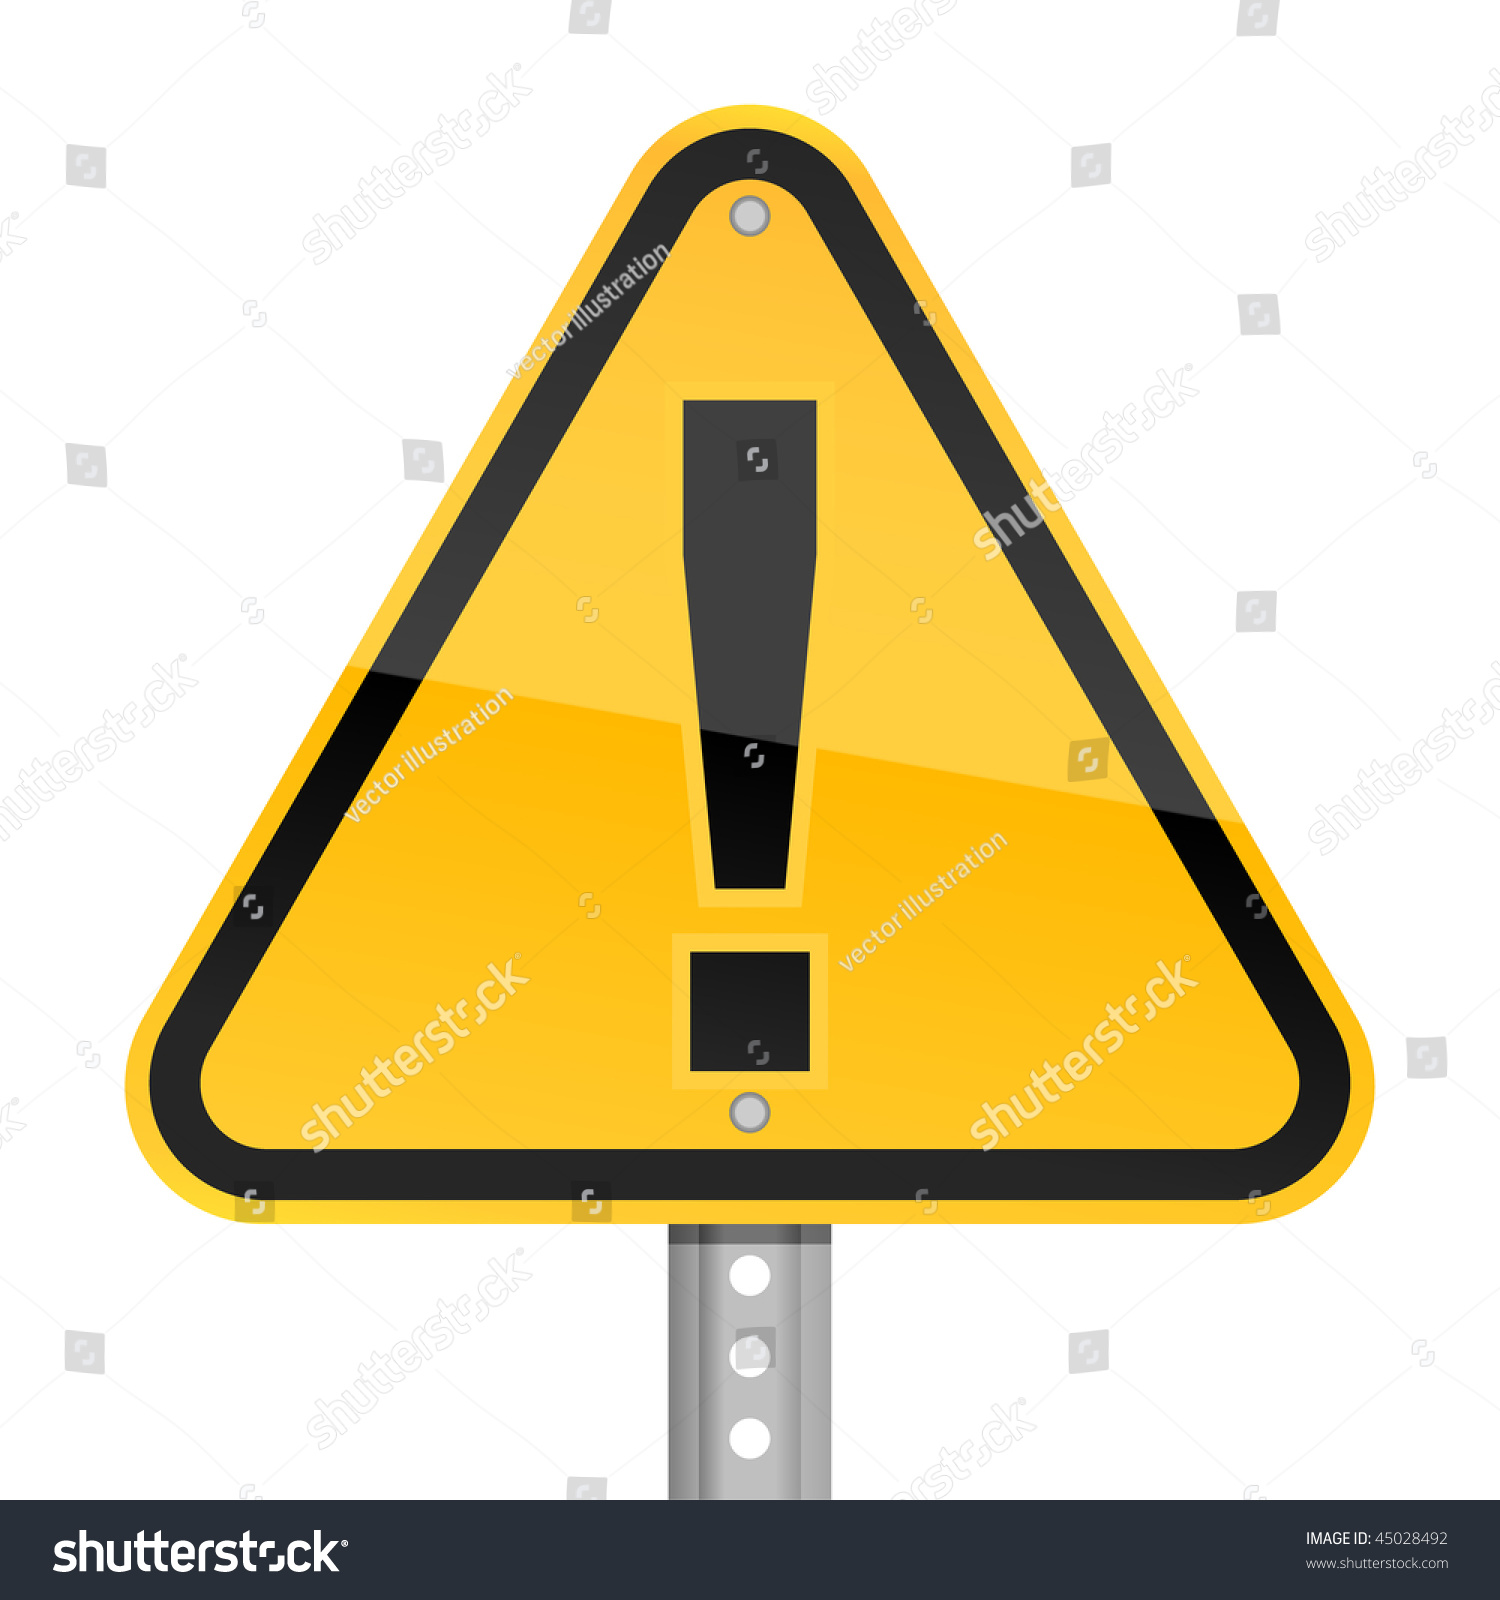 Road Barricade Signs Stock Vector Yellow Road Hazard Warning Sign With